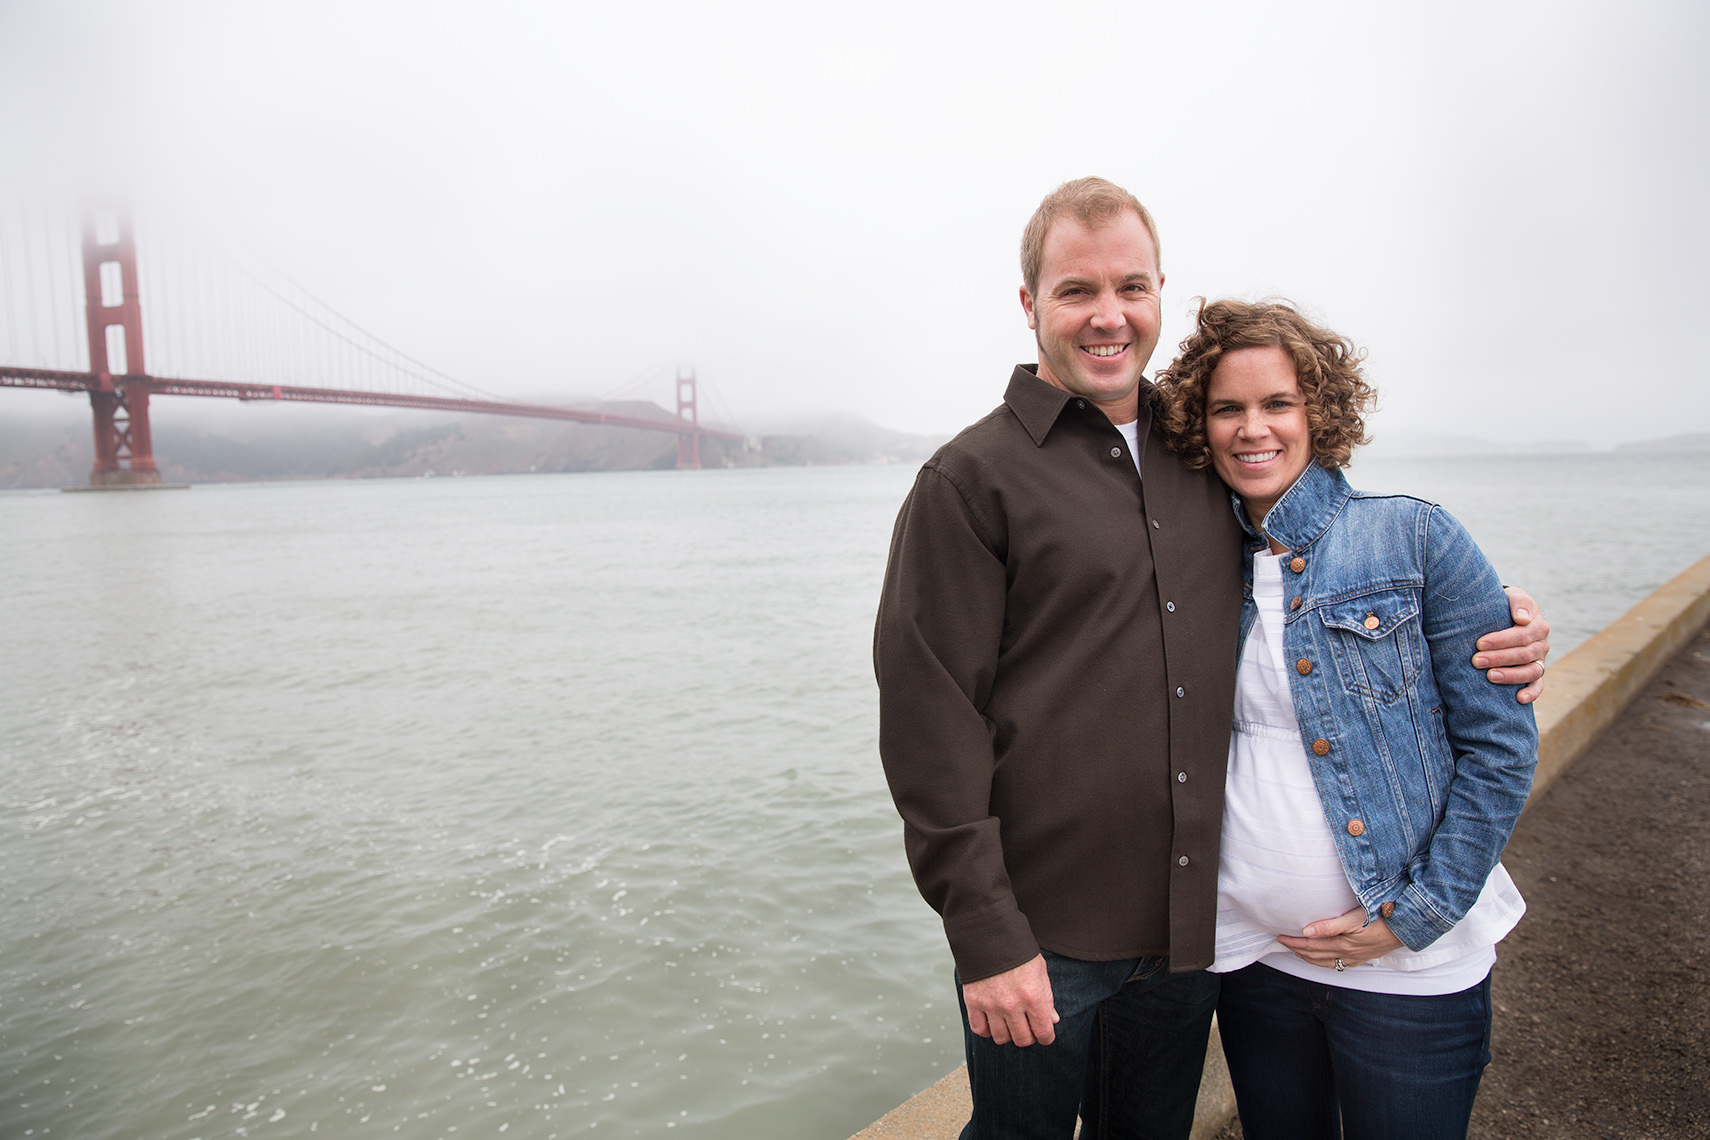 GoldenGateBridge_Maternity_NBP